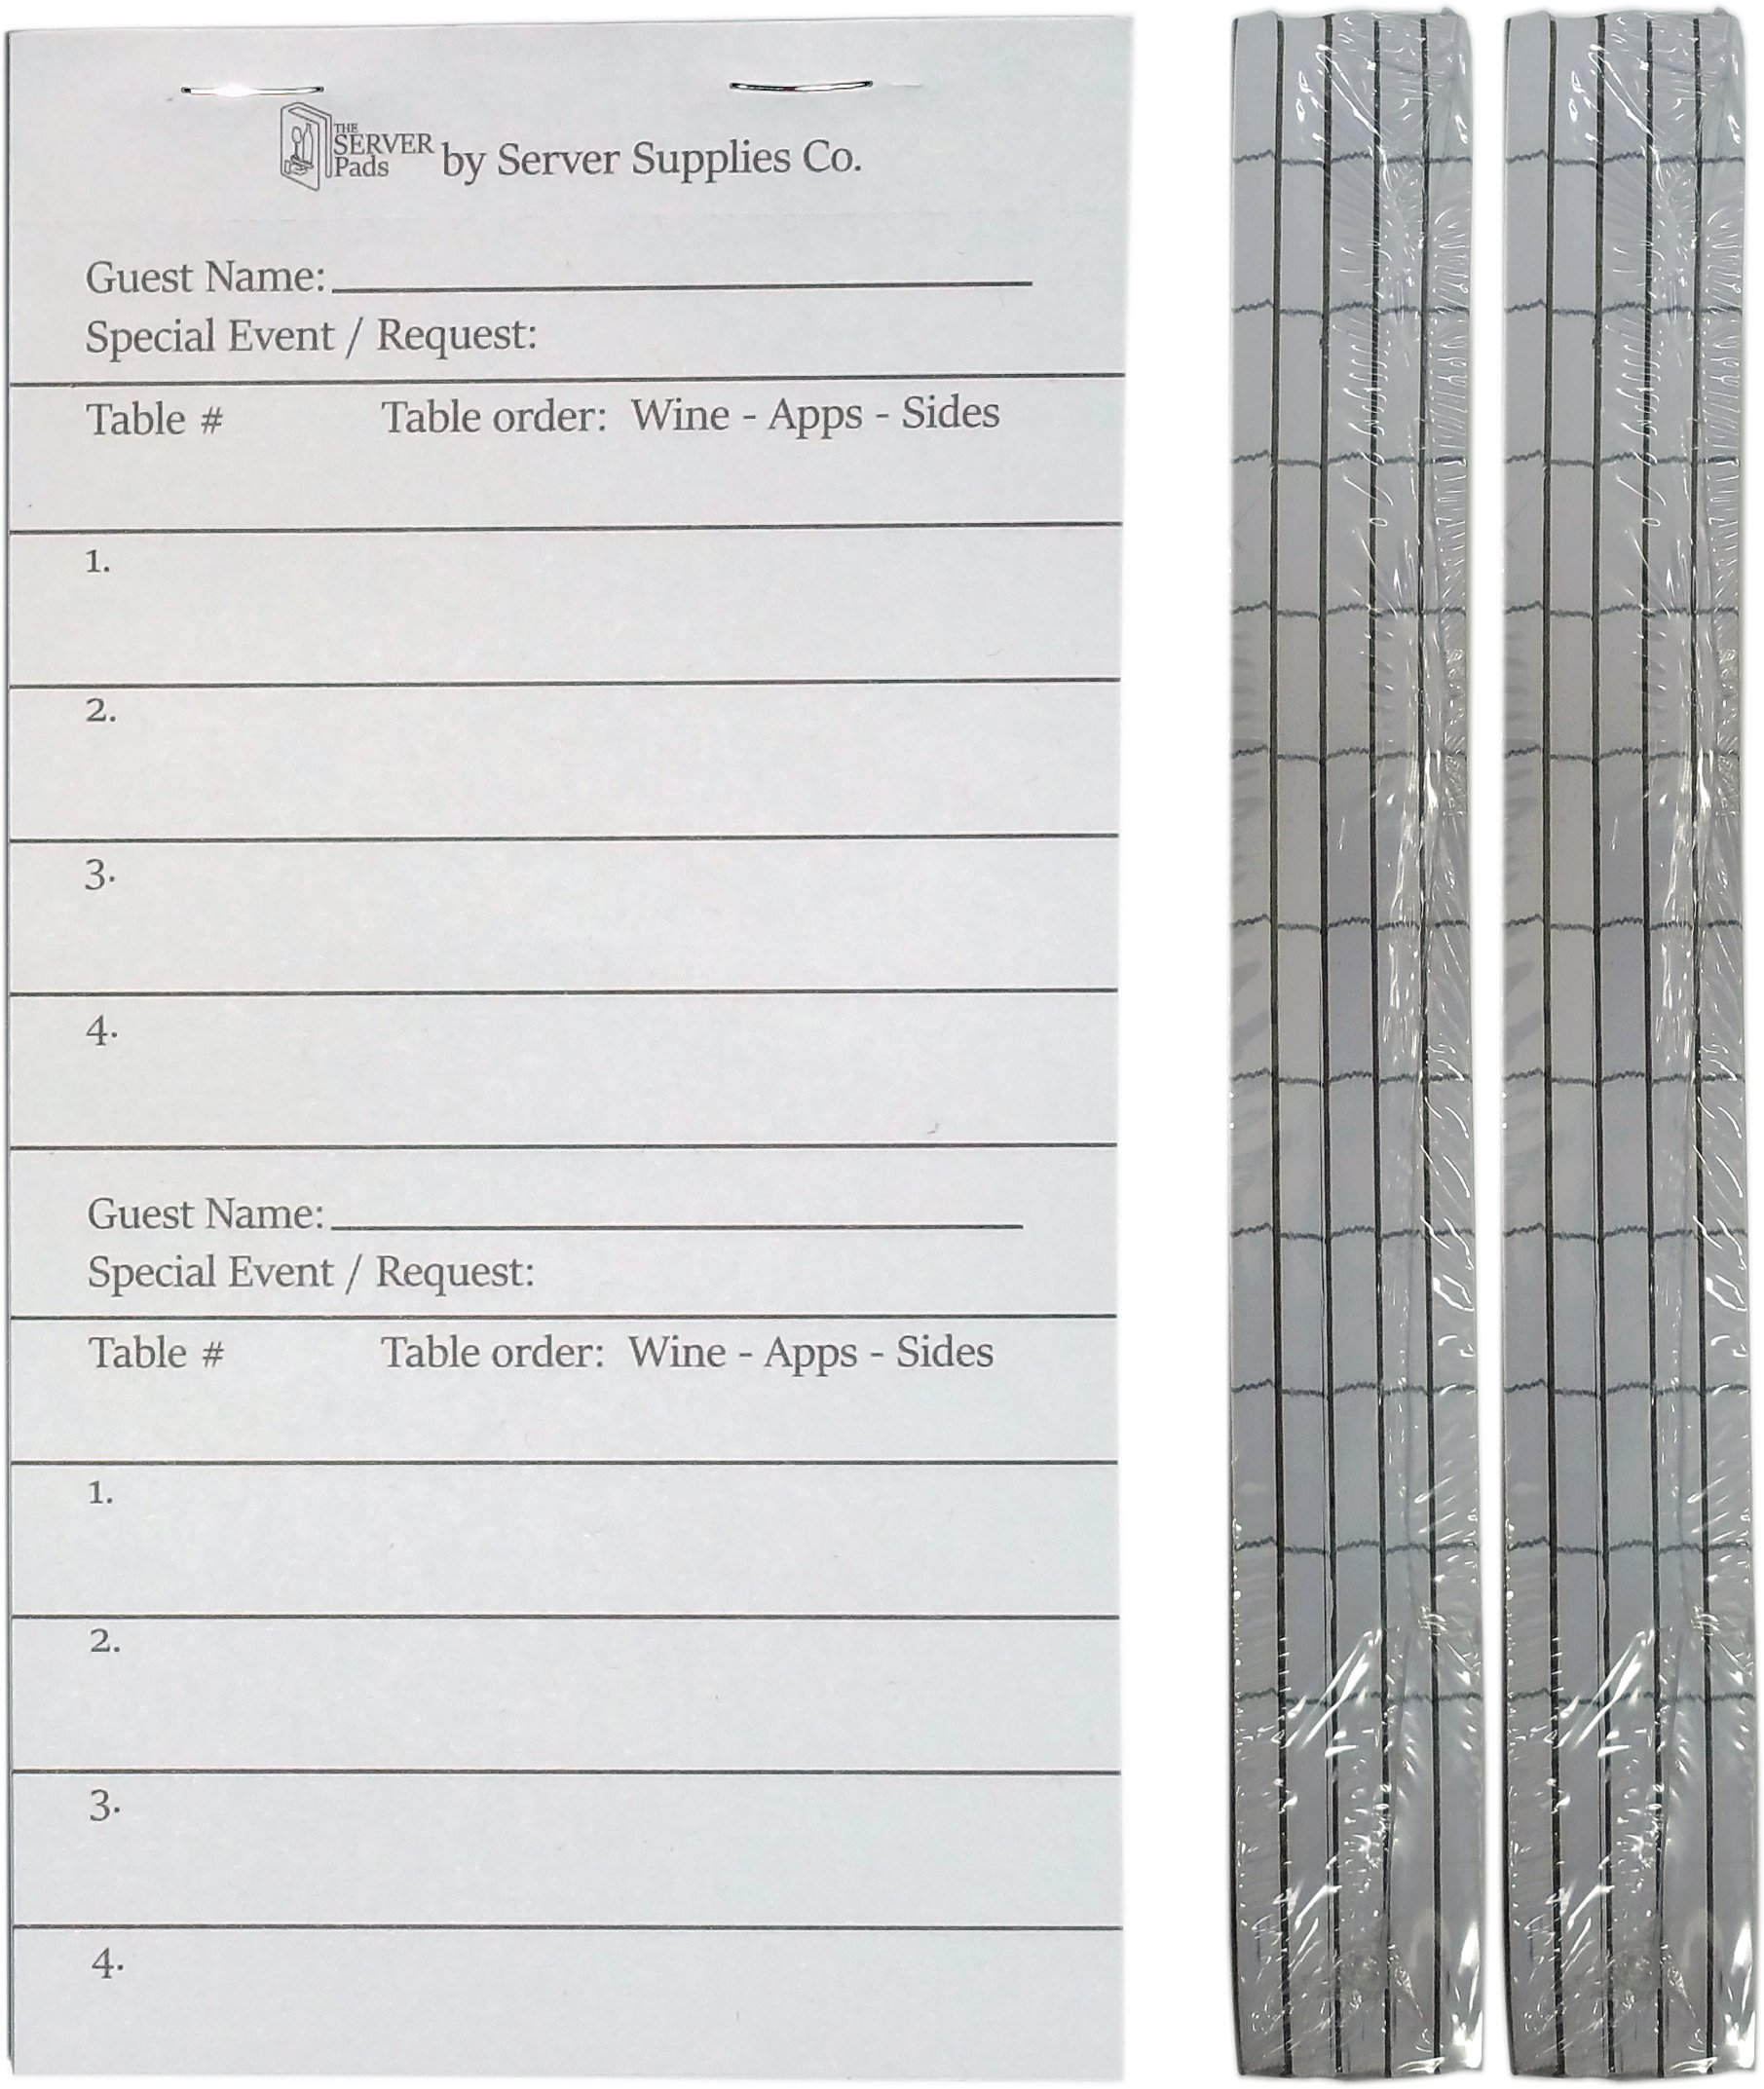 10 Server Order Pads for Waitresses and Waiters (3.75 x 7 Great addition to The Server Book) - Waitress Guest Checks - Waiter Order Pads - Food Service Equipment - 50 pages/book - 10 Books+ (10)